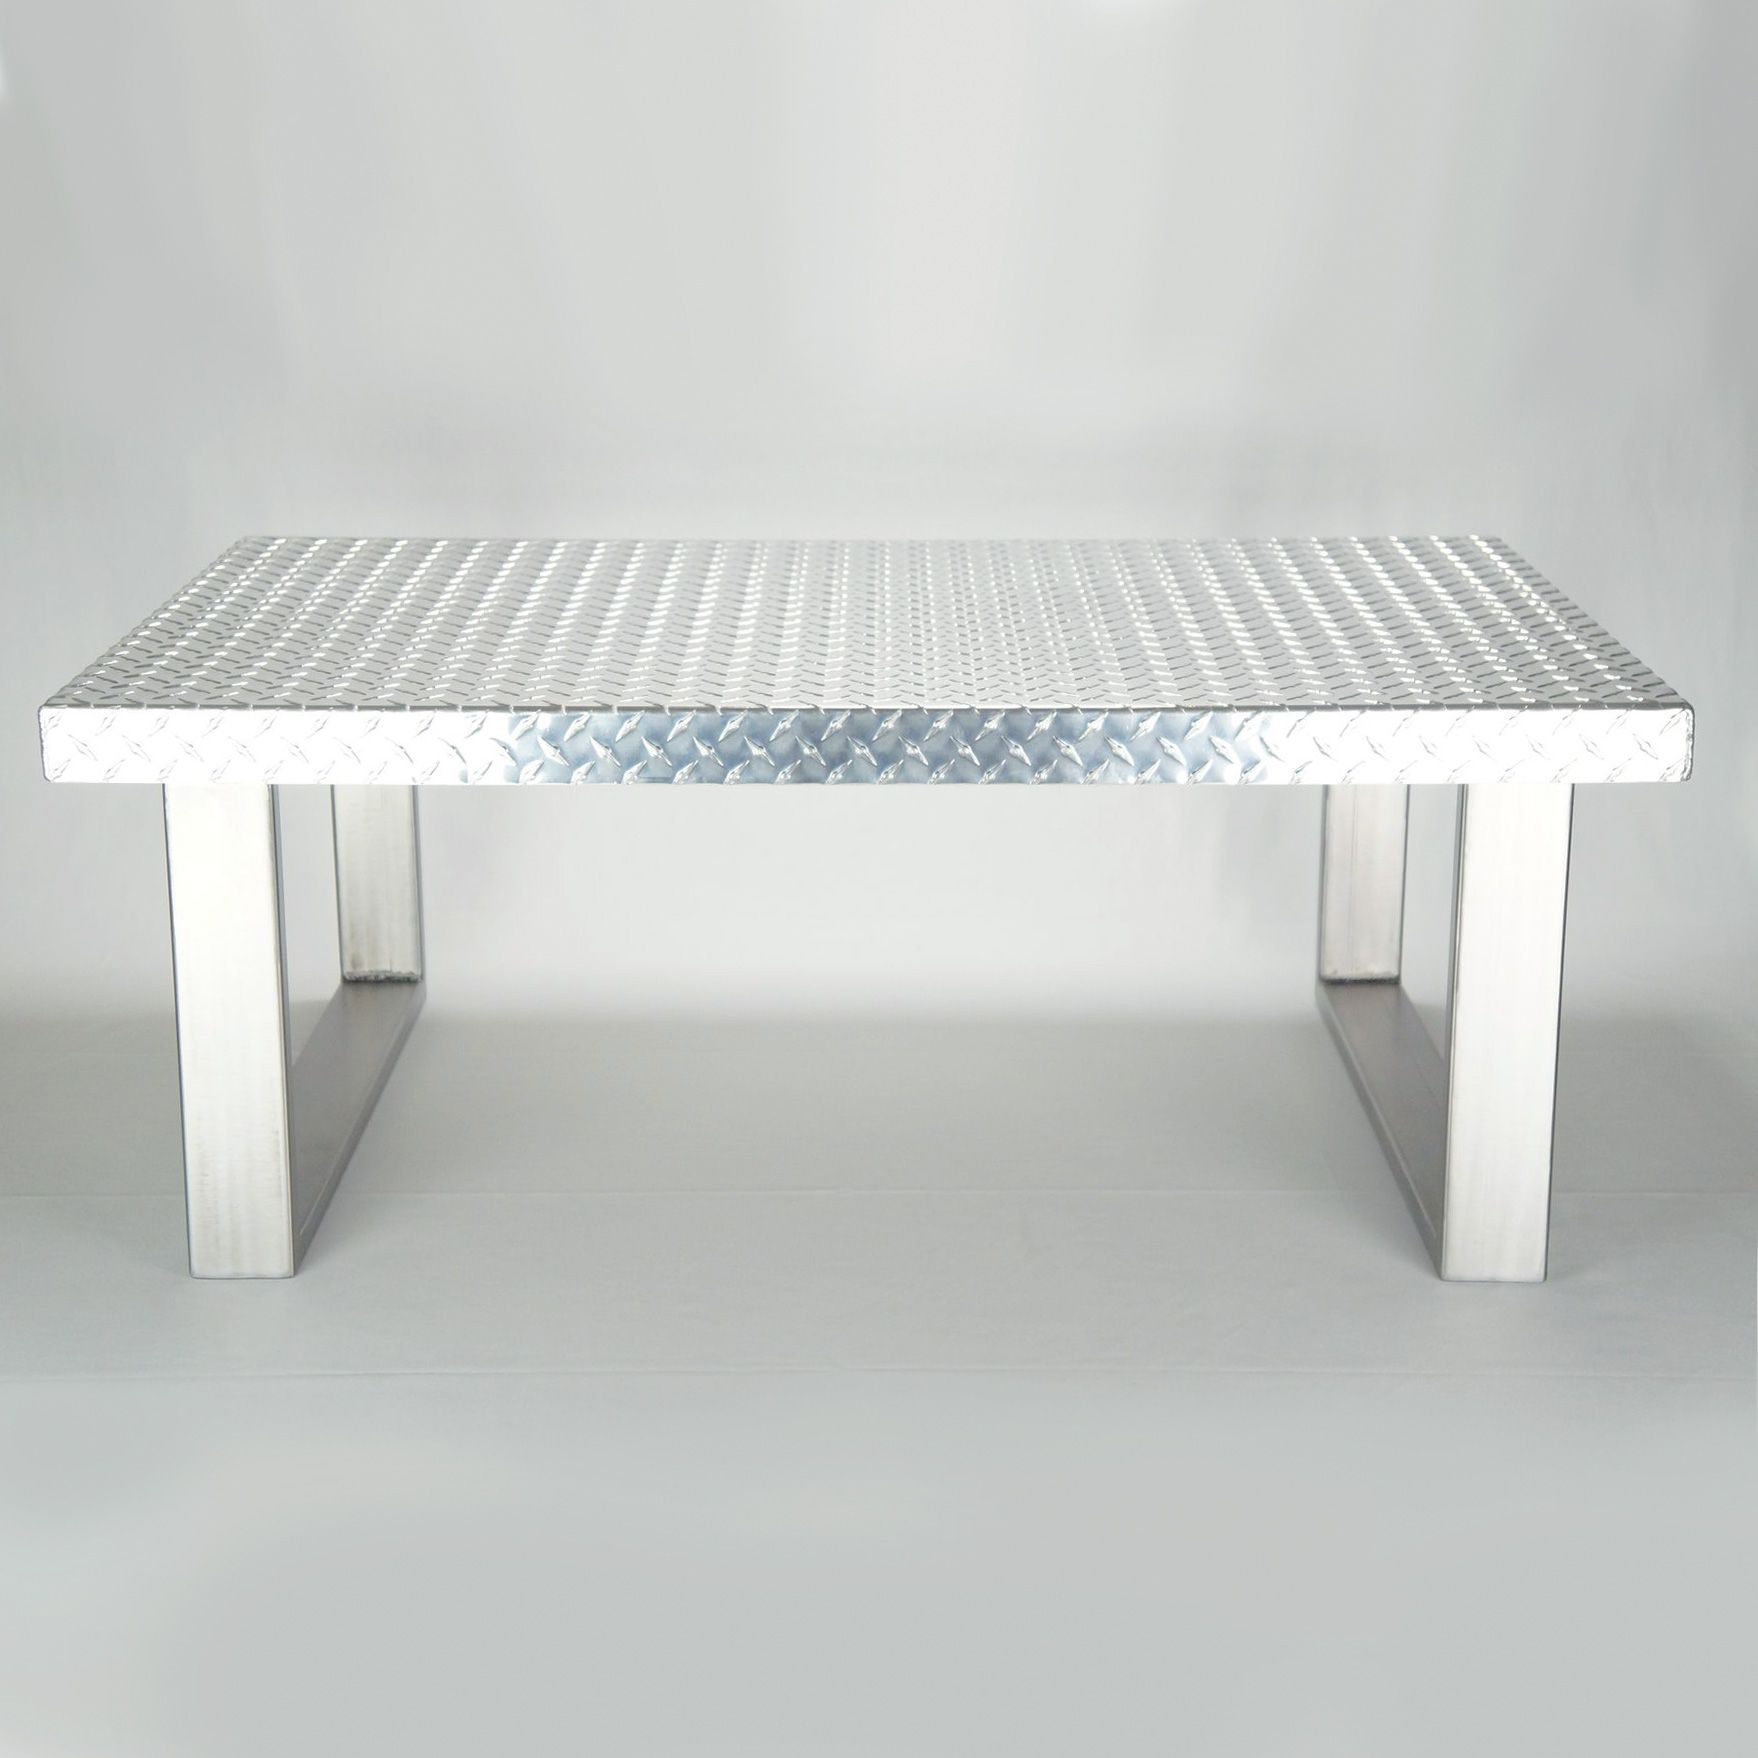 Hand made industrial diamond plate metal coffee table by for Wire coffee table